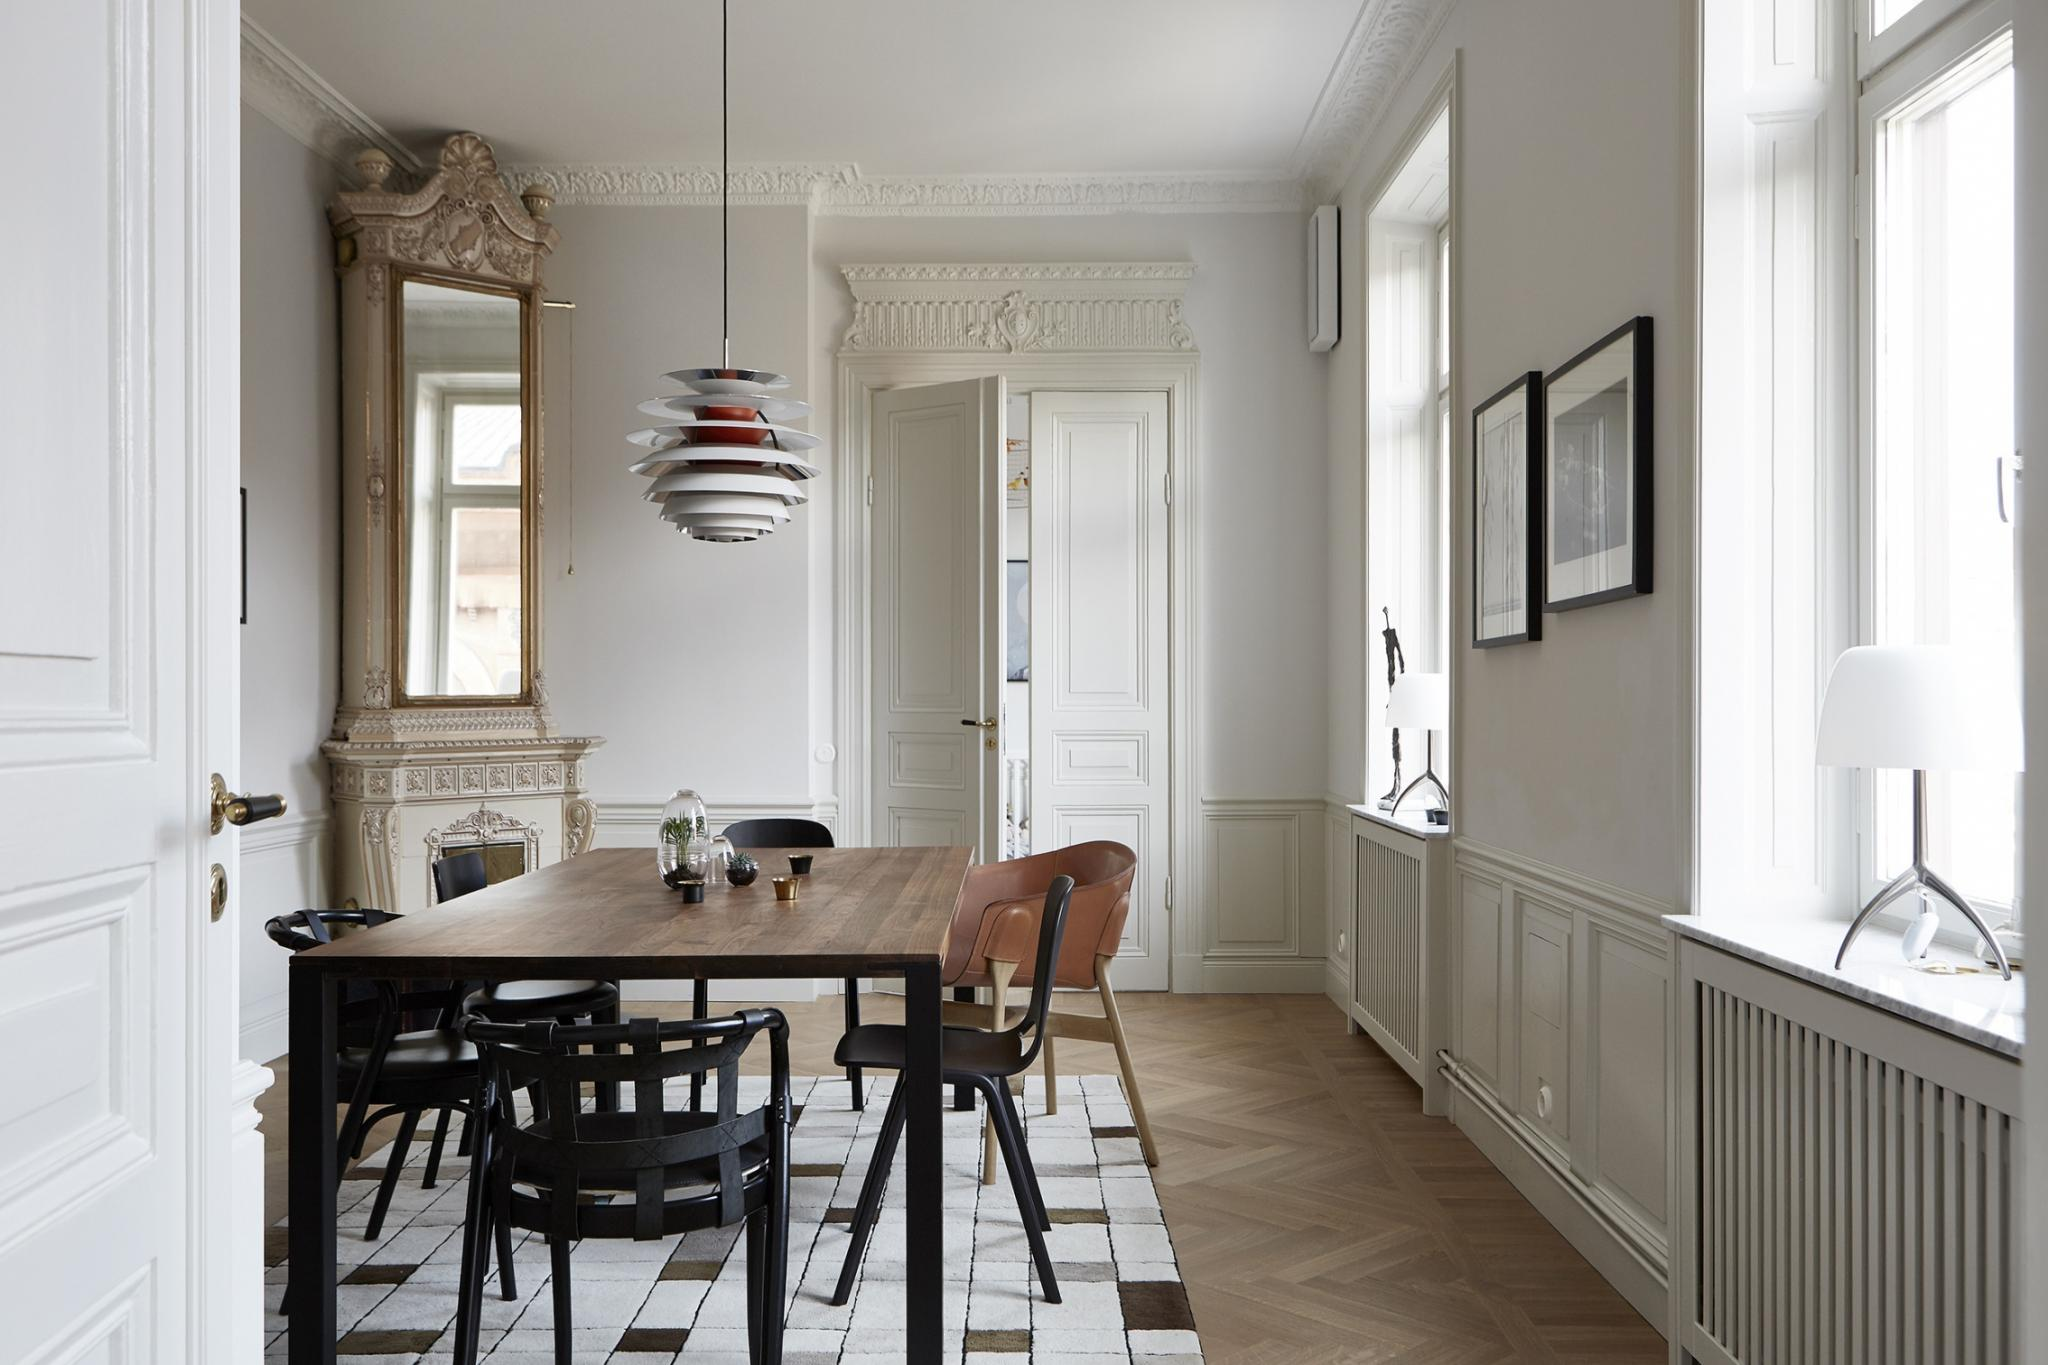 Turn of the century furniture - Turn Of The Century Home With Great Pieces Via Coco Lapine Design Blog